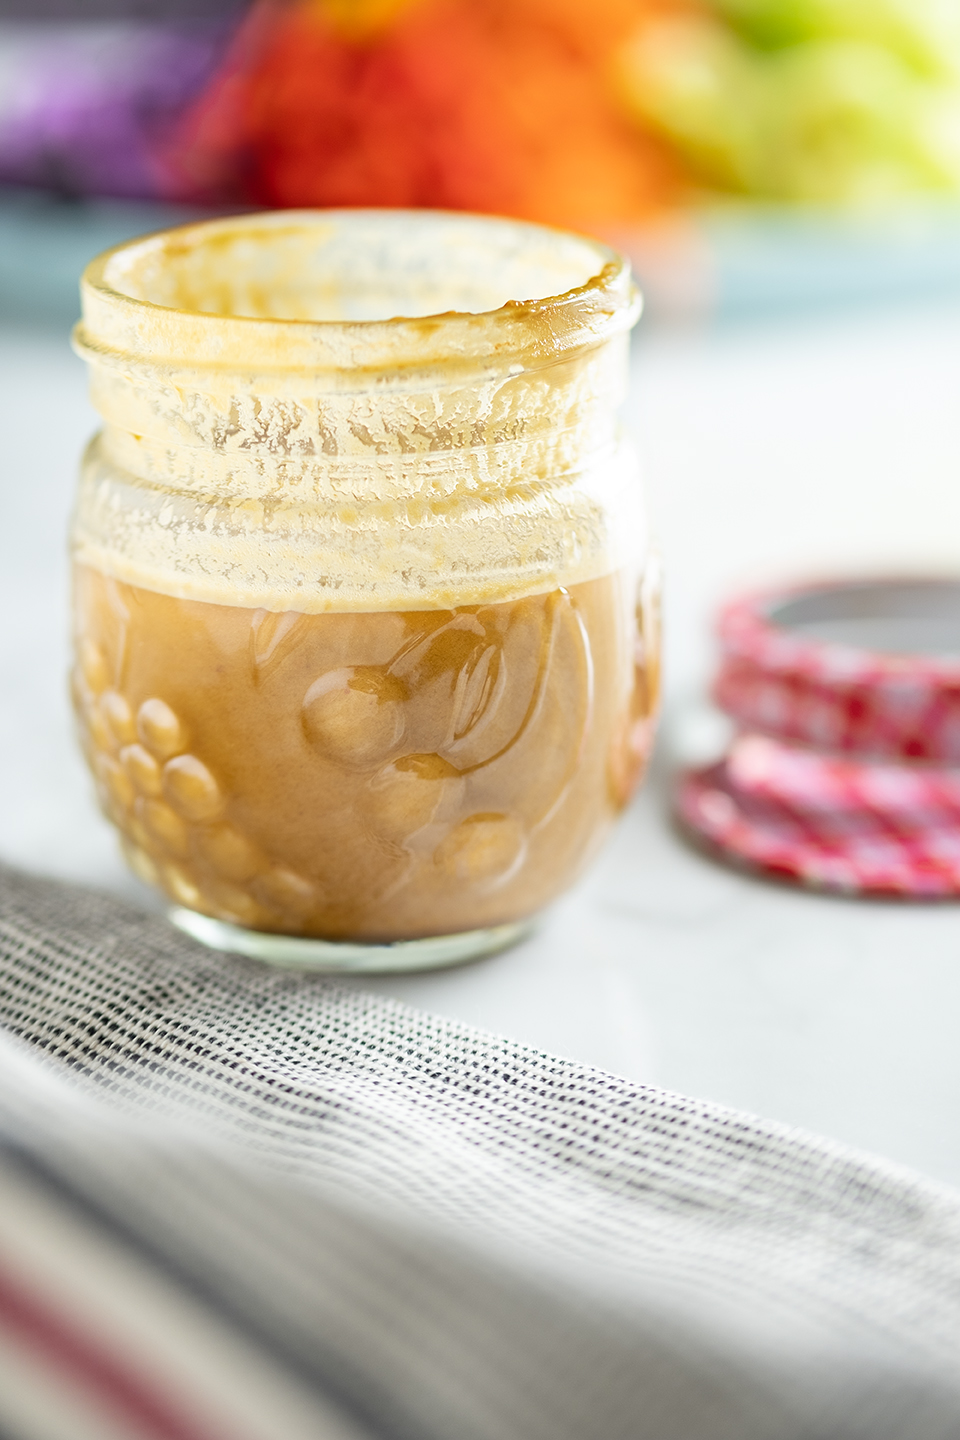 Sunbutter dressing in a small glass canning jar with red lid and vegetables in the background.